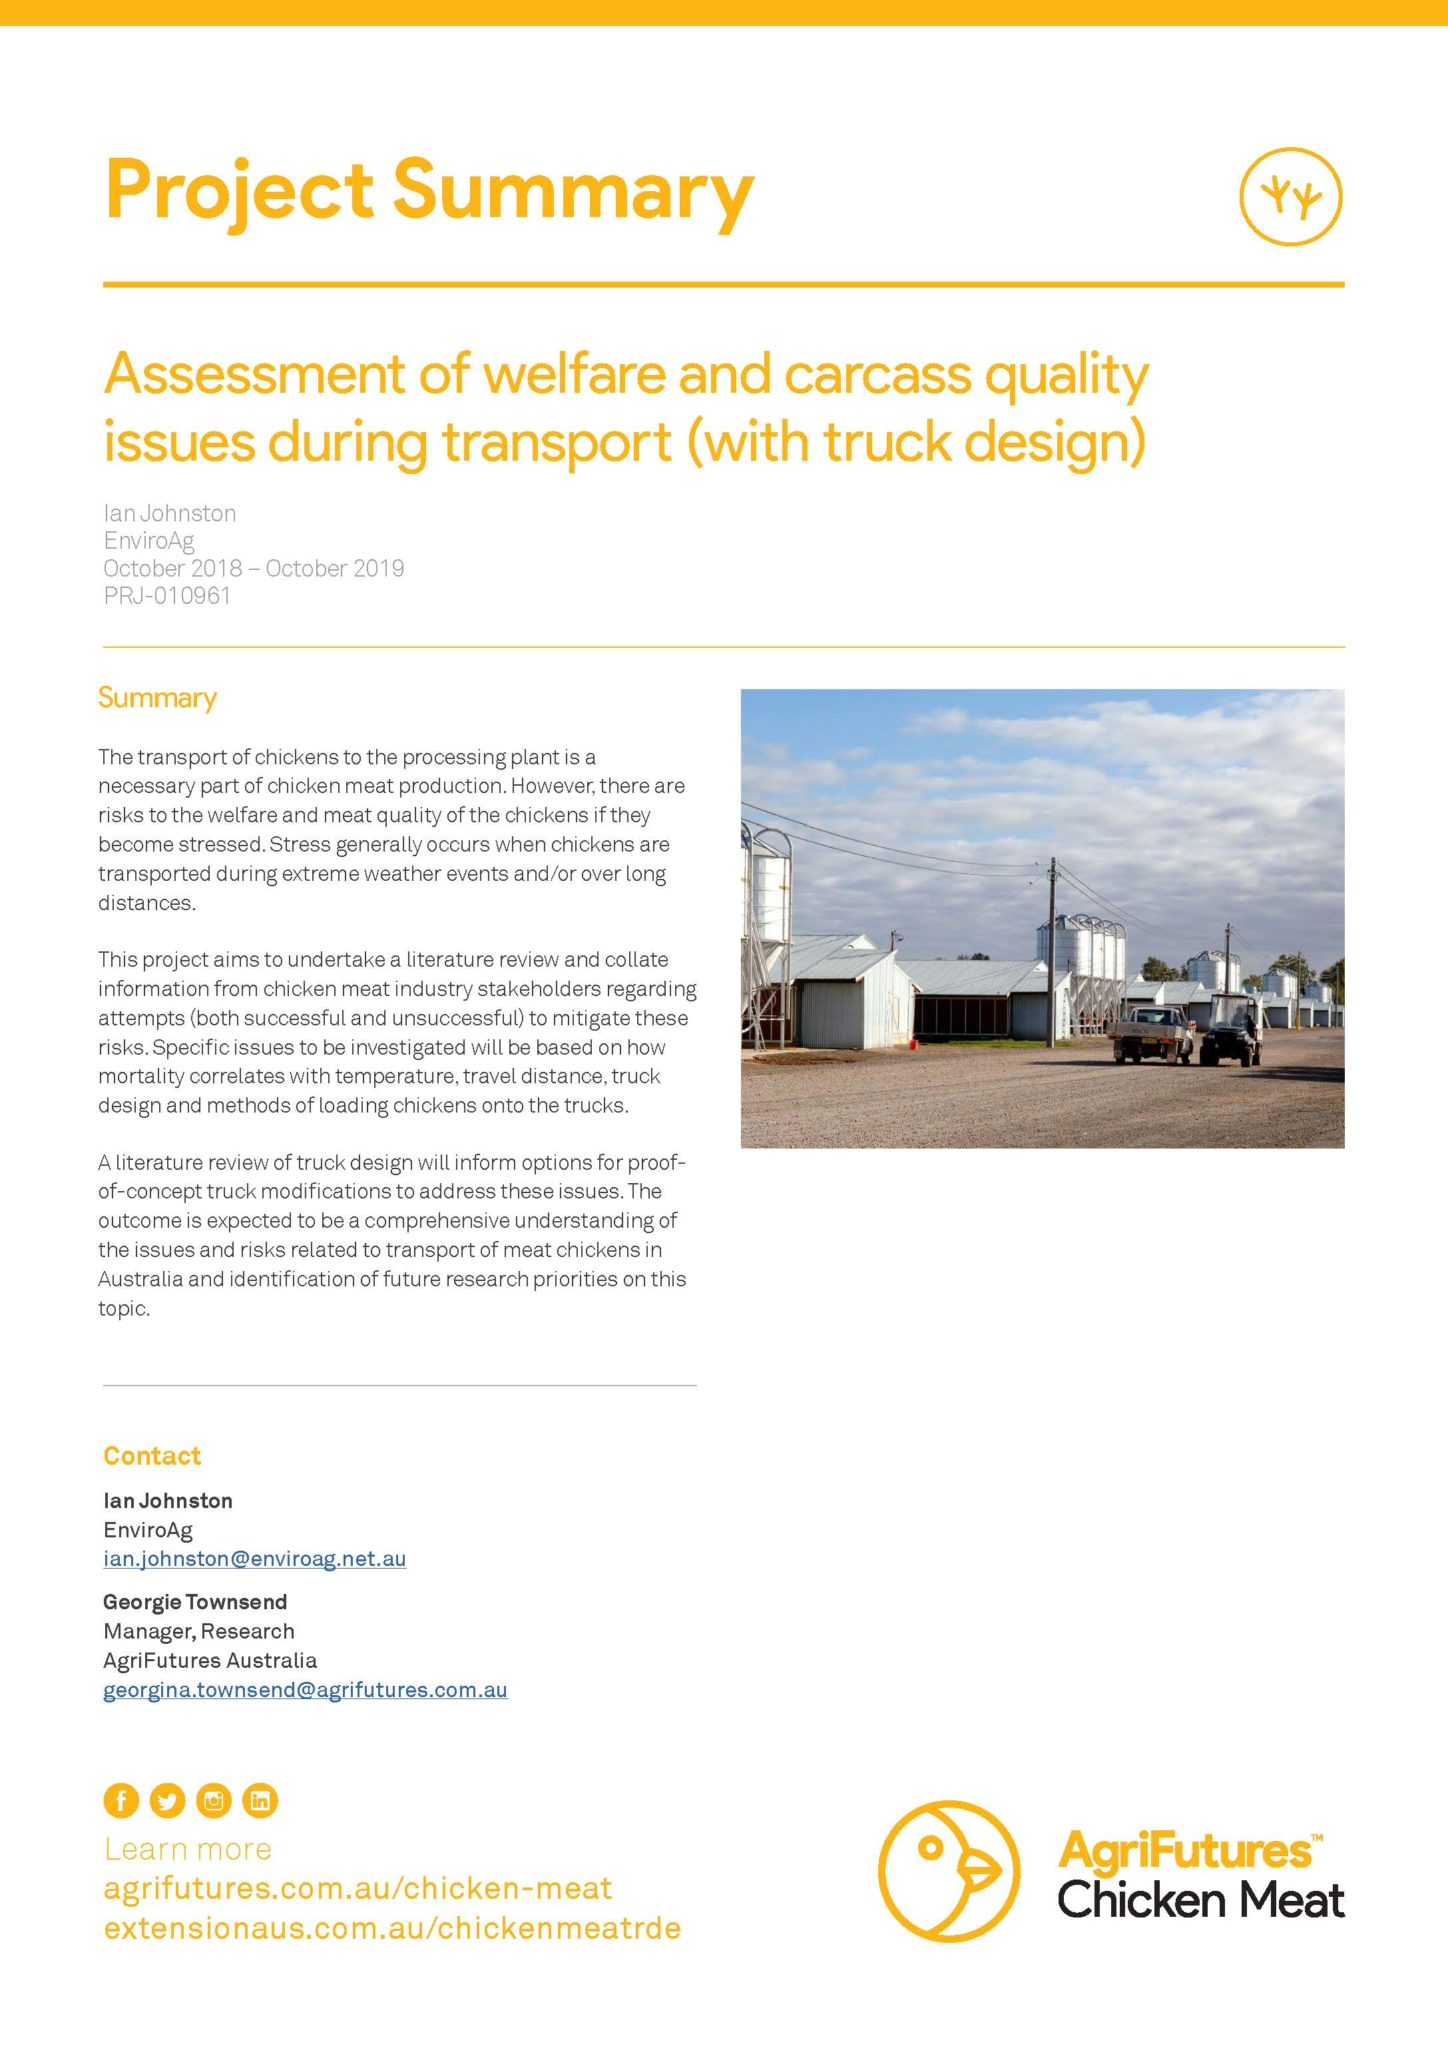 Project Summary: Assessment of welfare and carcass quality issues during transport (with truck design) - image